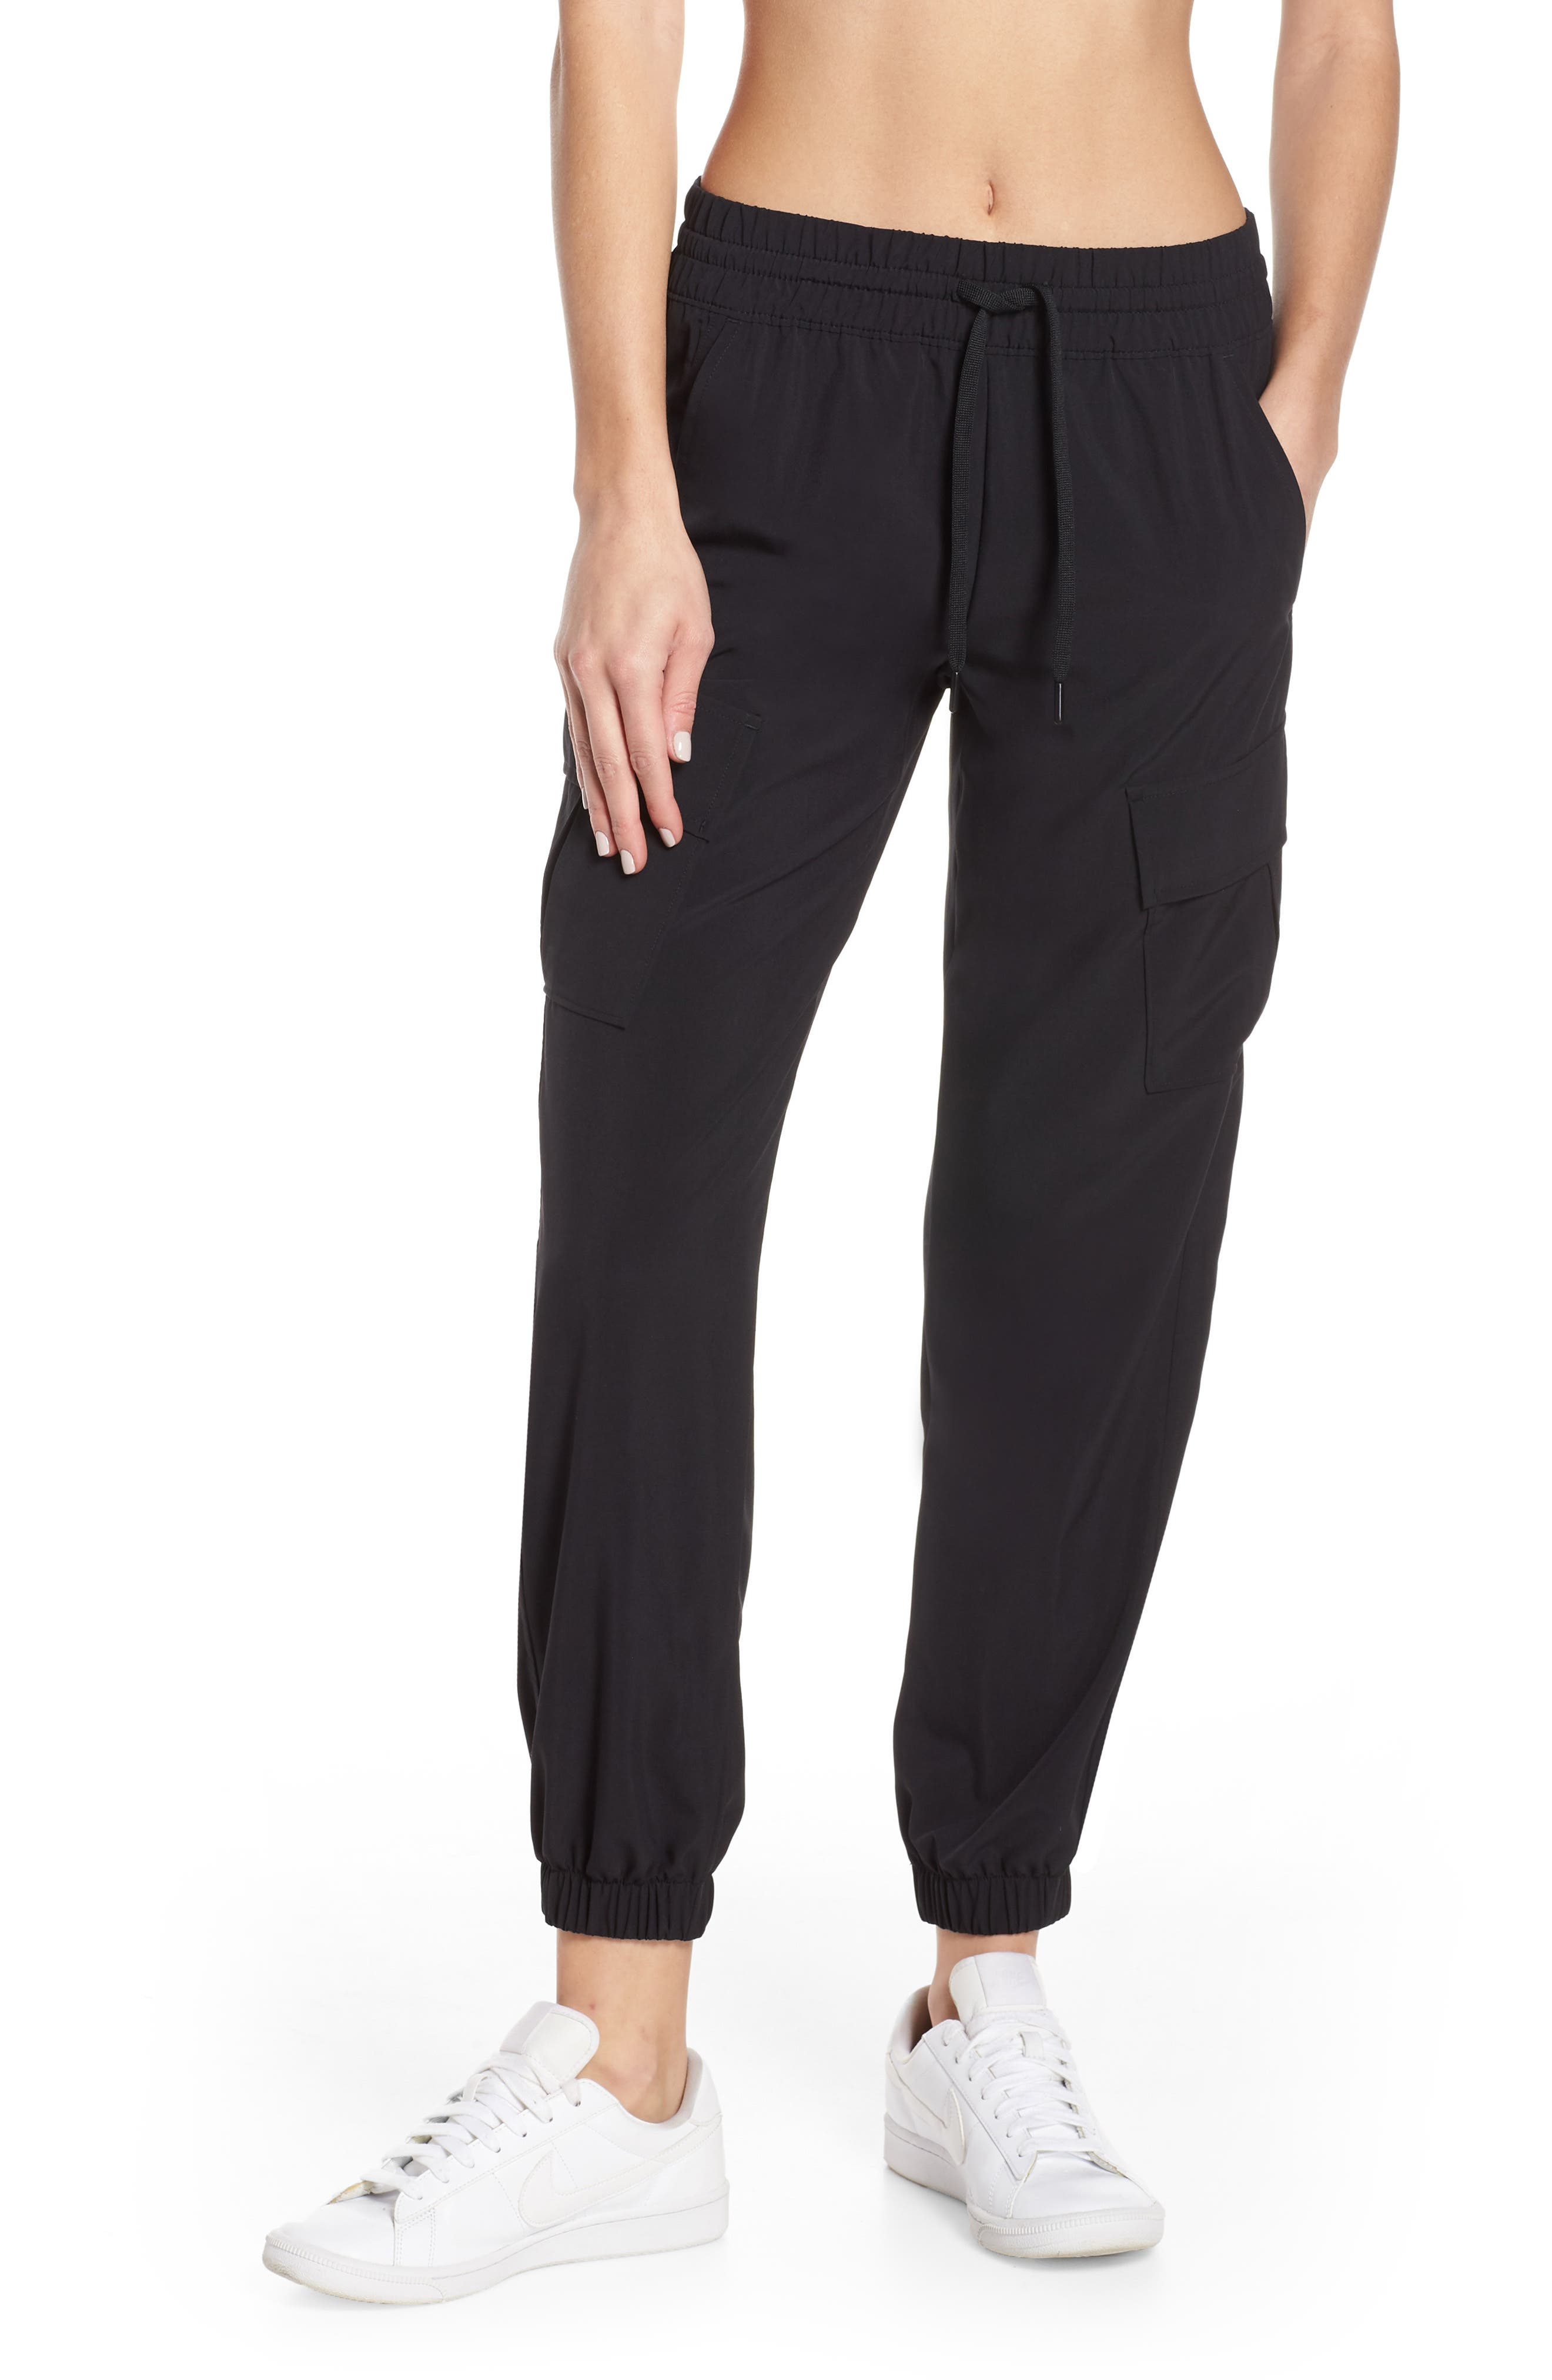 Urban Cargo Jogger Pants by Zella